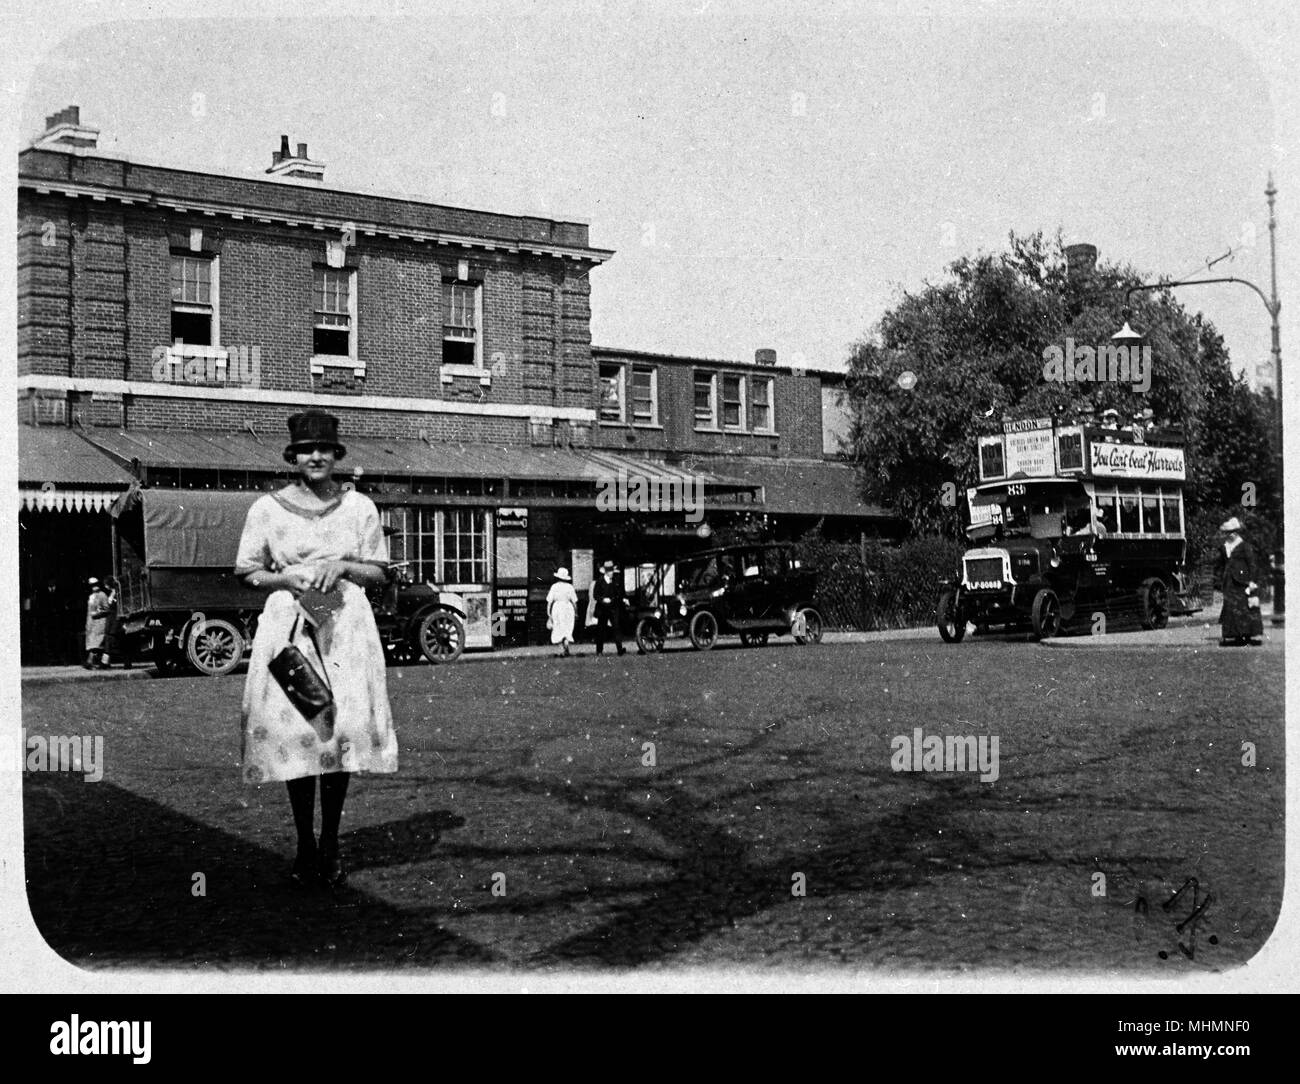 Woman outside Golders Green underground station, London. The bus, destination Hendon, carries an advertisement: You Can't Beat Harrods.      Date: 1921 - Stock Image